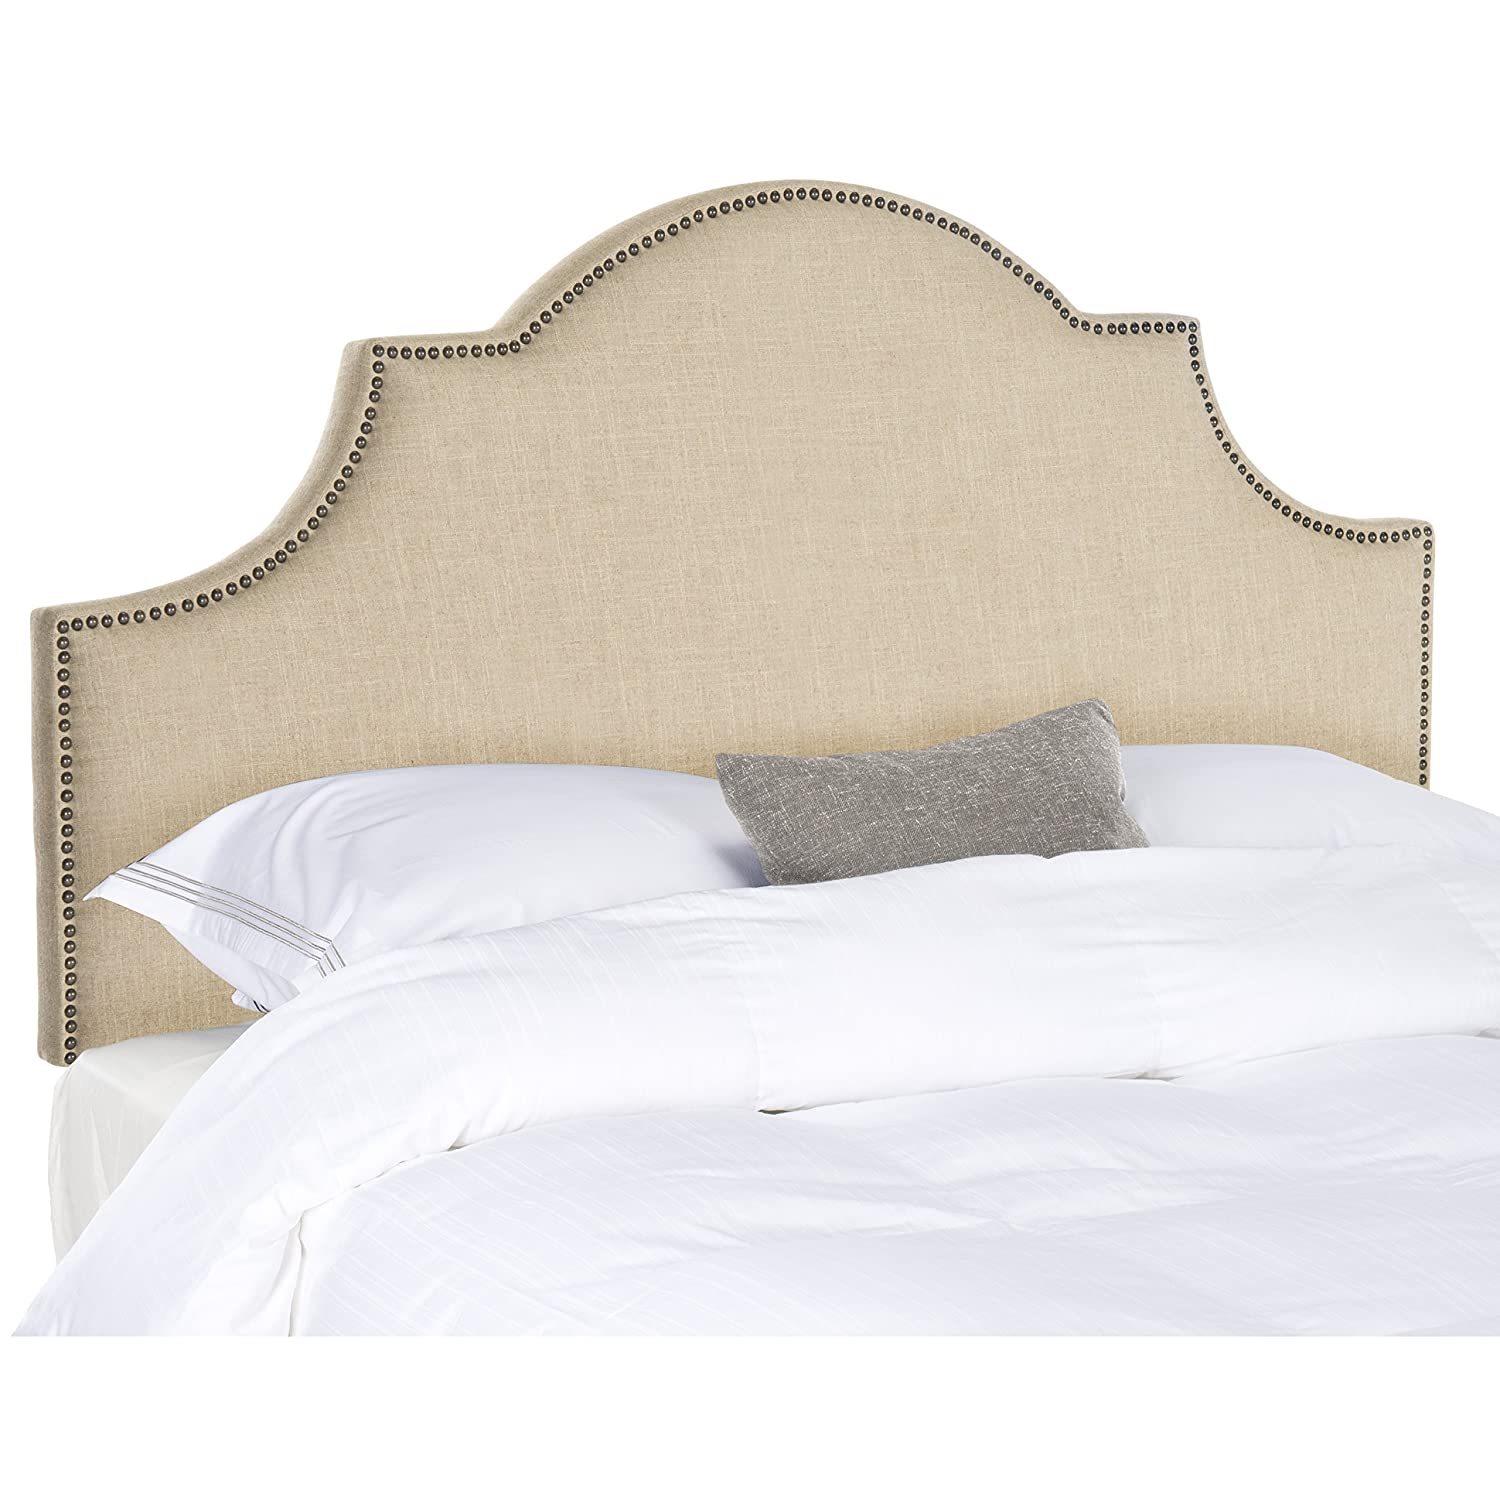 Hemp - Brass Nailheads King Safavieh Hallmar Wedgwood bluee Upholstered Arched Headboard - Silver Nailhead (Queen)